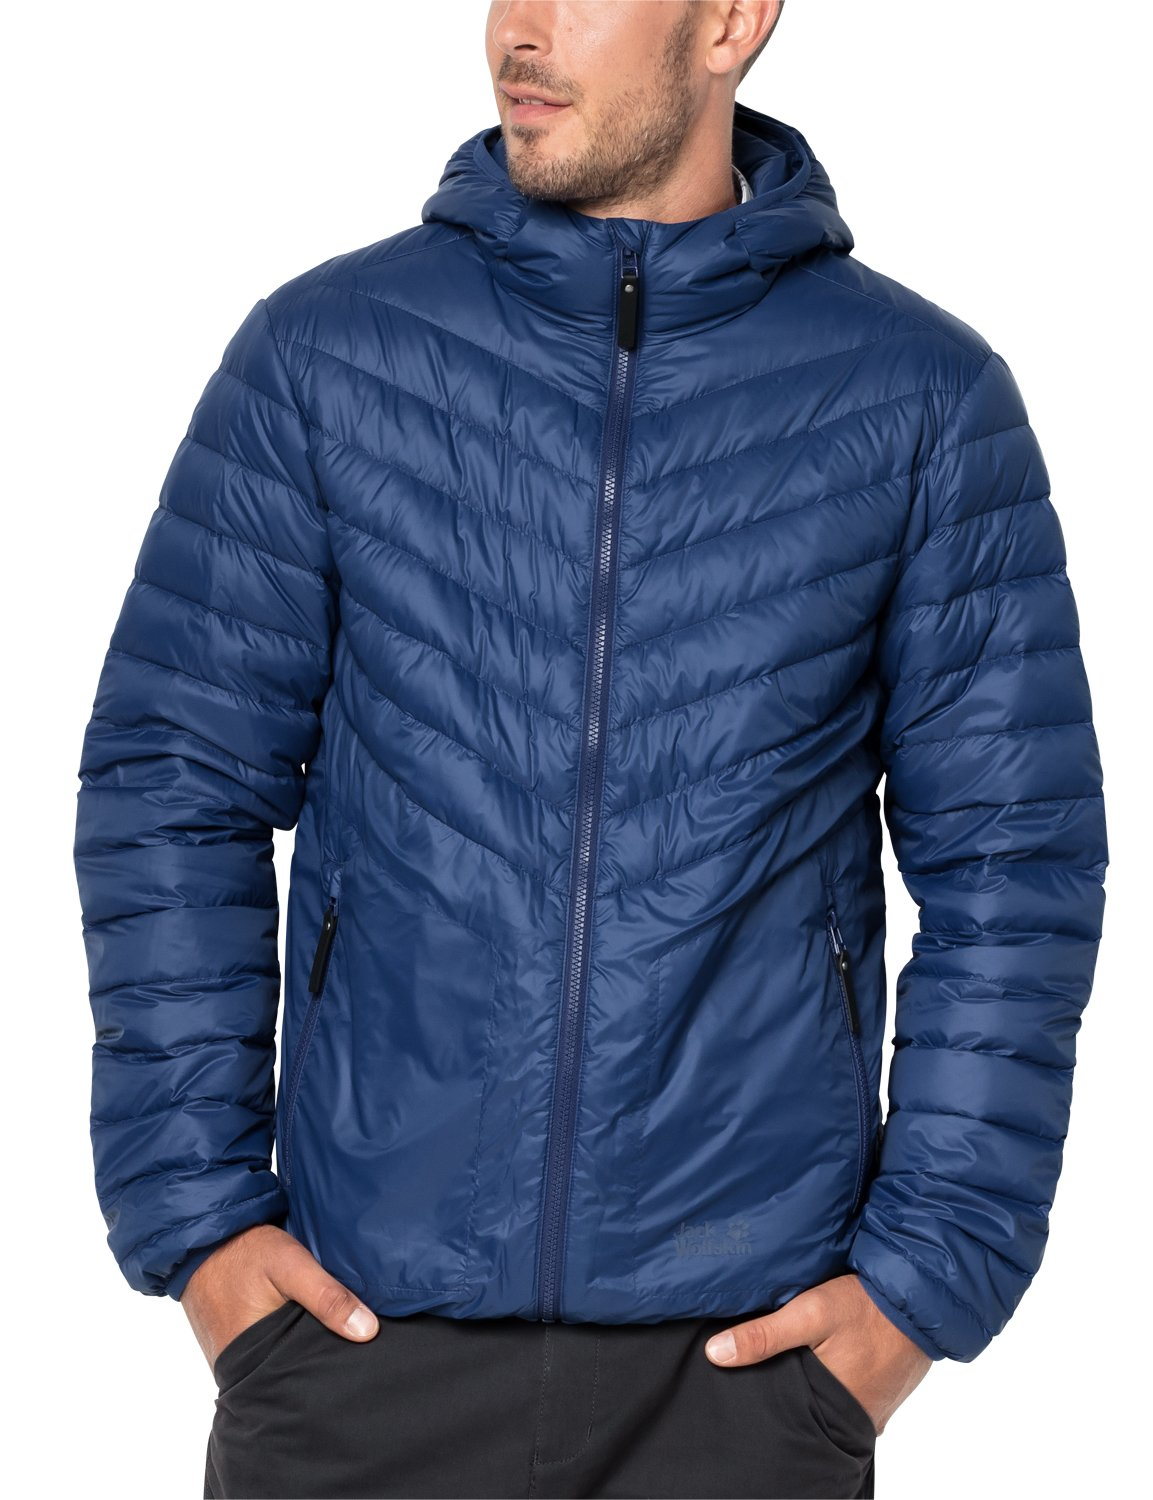 Jack Wolfskin Men's Vista Jacket, 3X-Large, Royal Blue by Jack Wolfskin